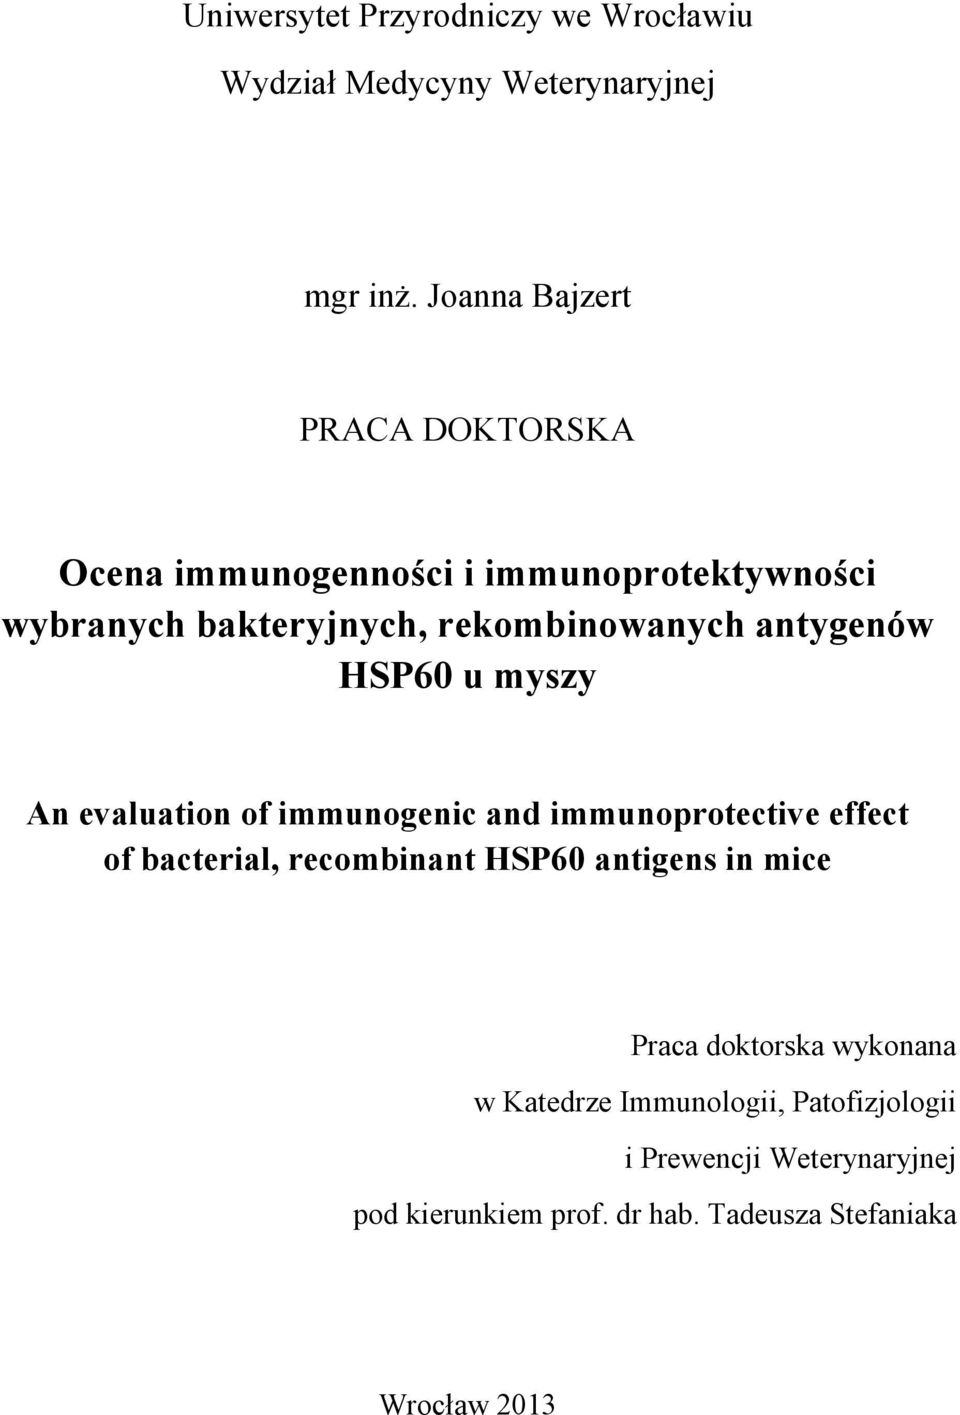 antygenów HSP60 u myszy An evaluation of immunogenic and immunoprotective effect of bacterial, recombinant HSP60